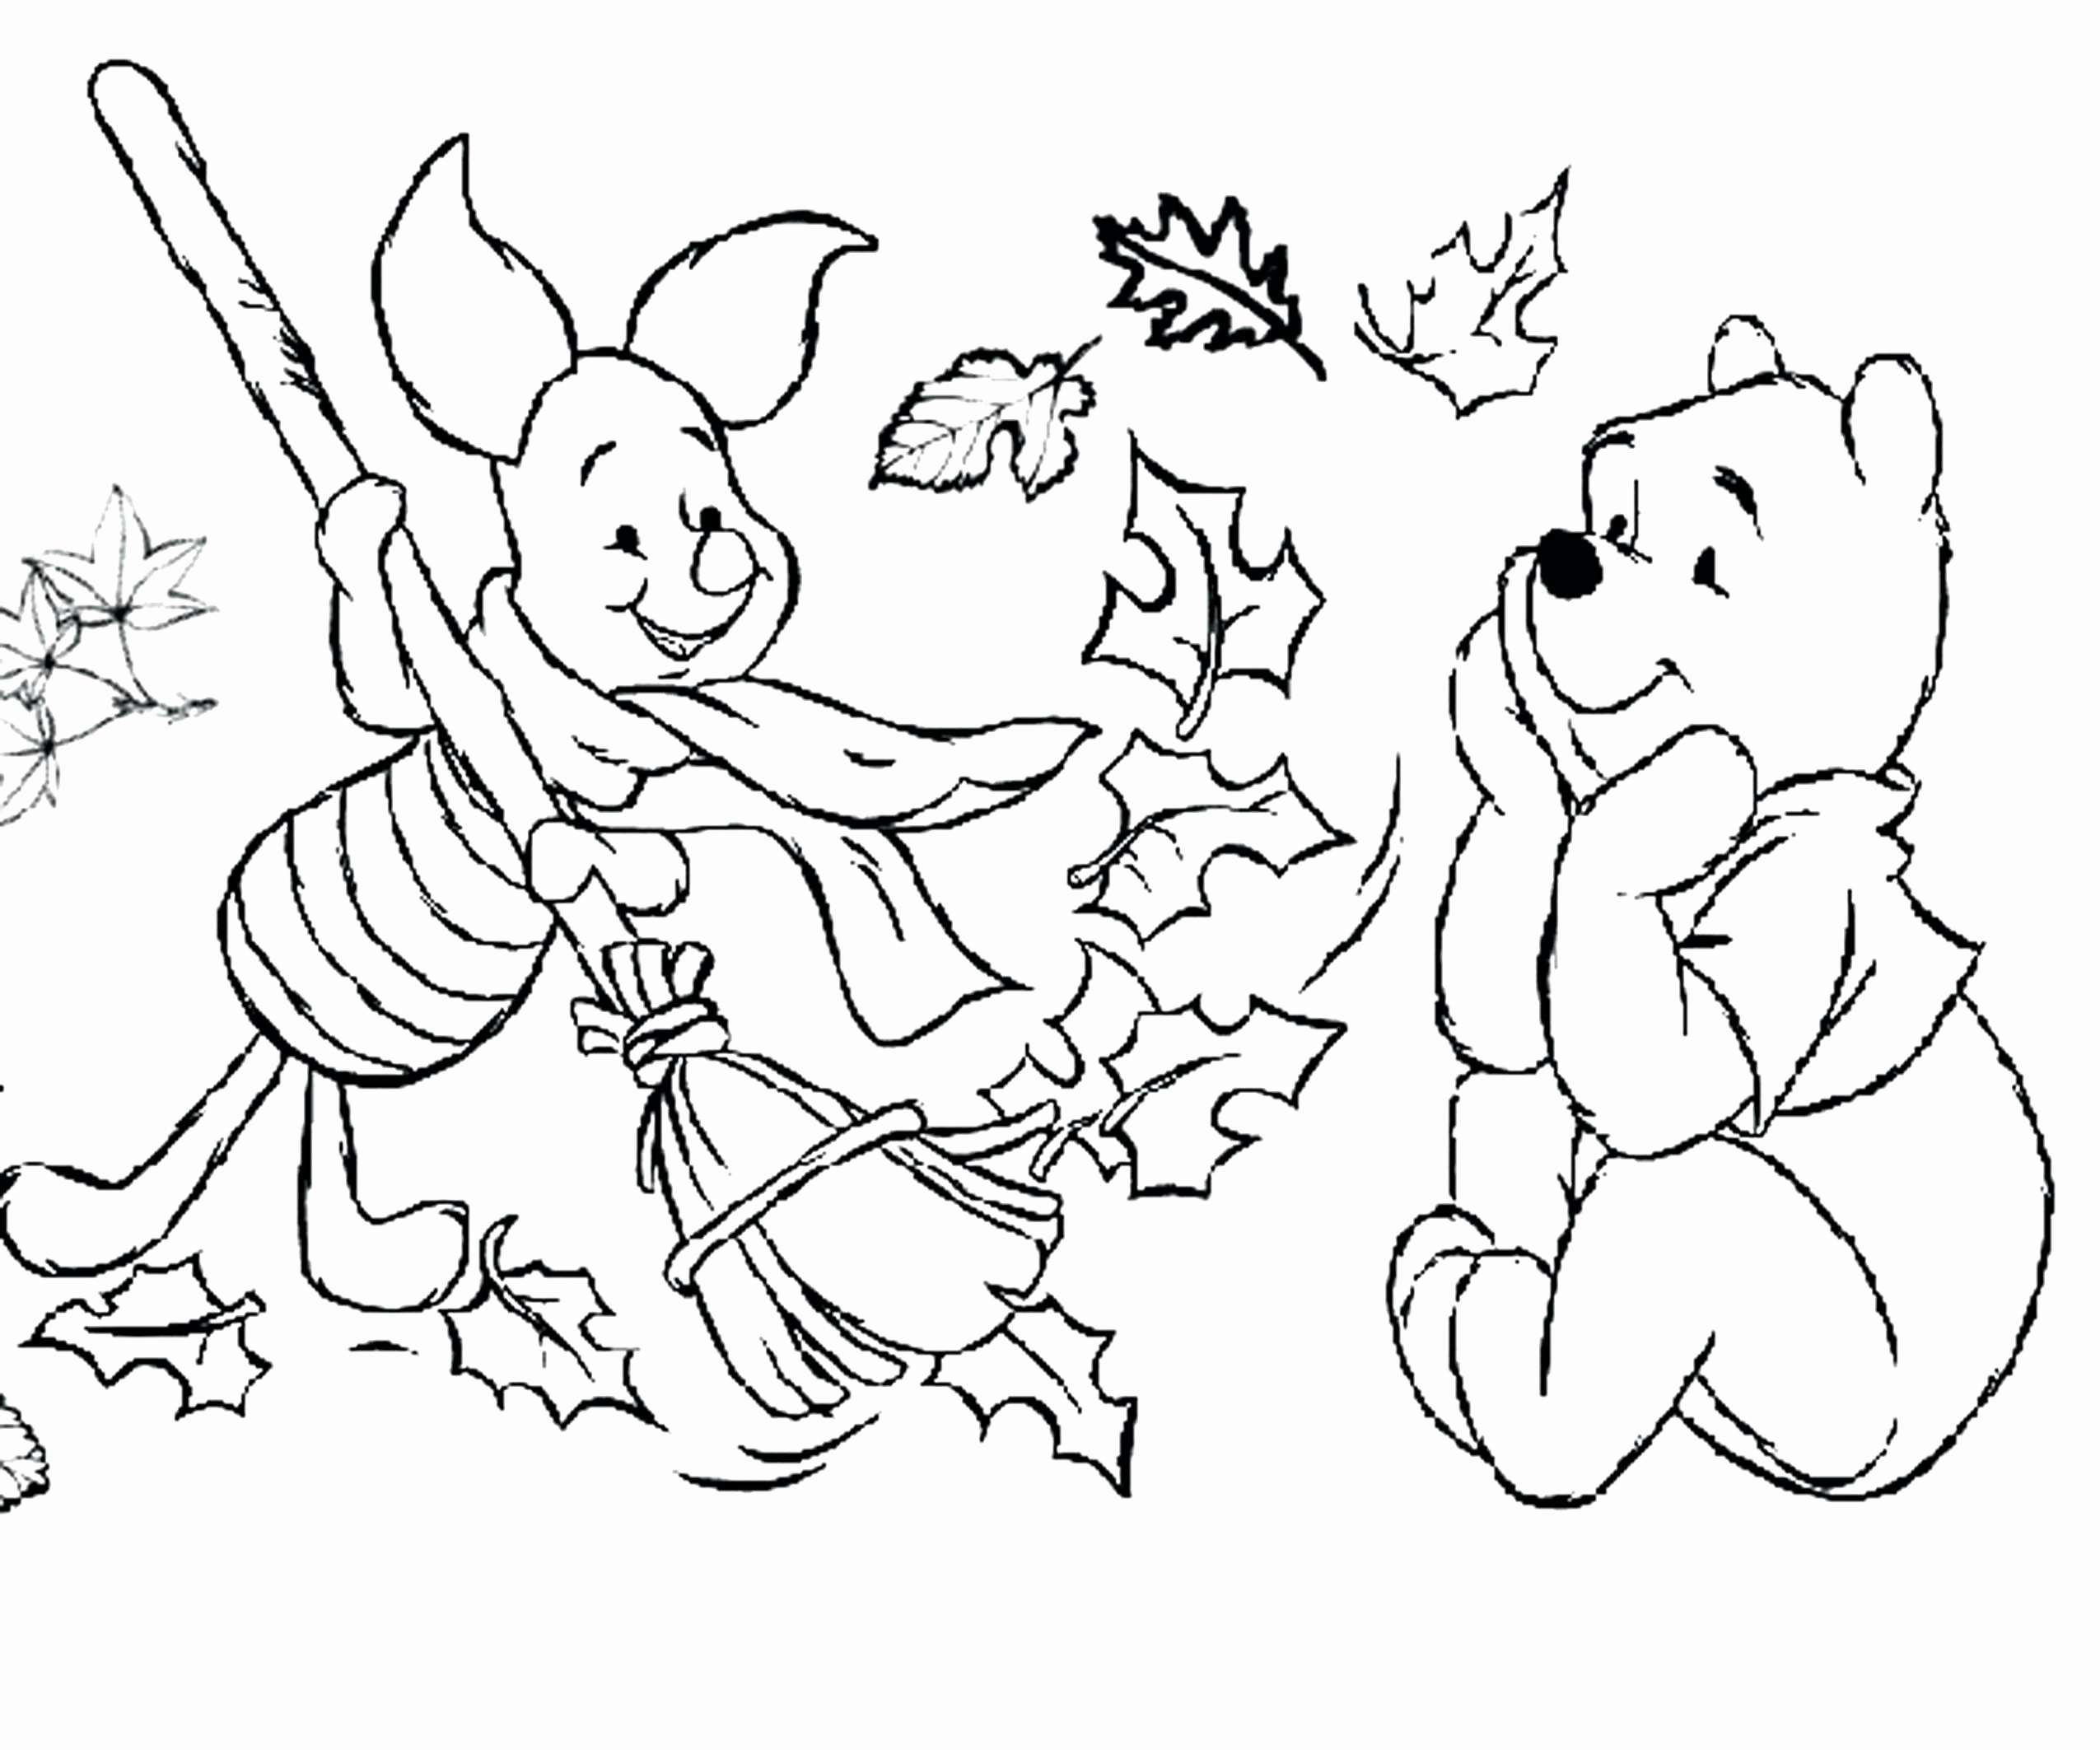 Free Printable Catholic Christmas Coloring Pages With For Children That You